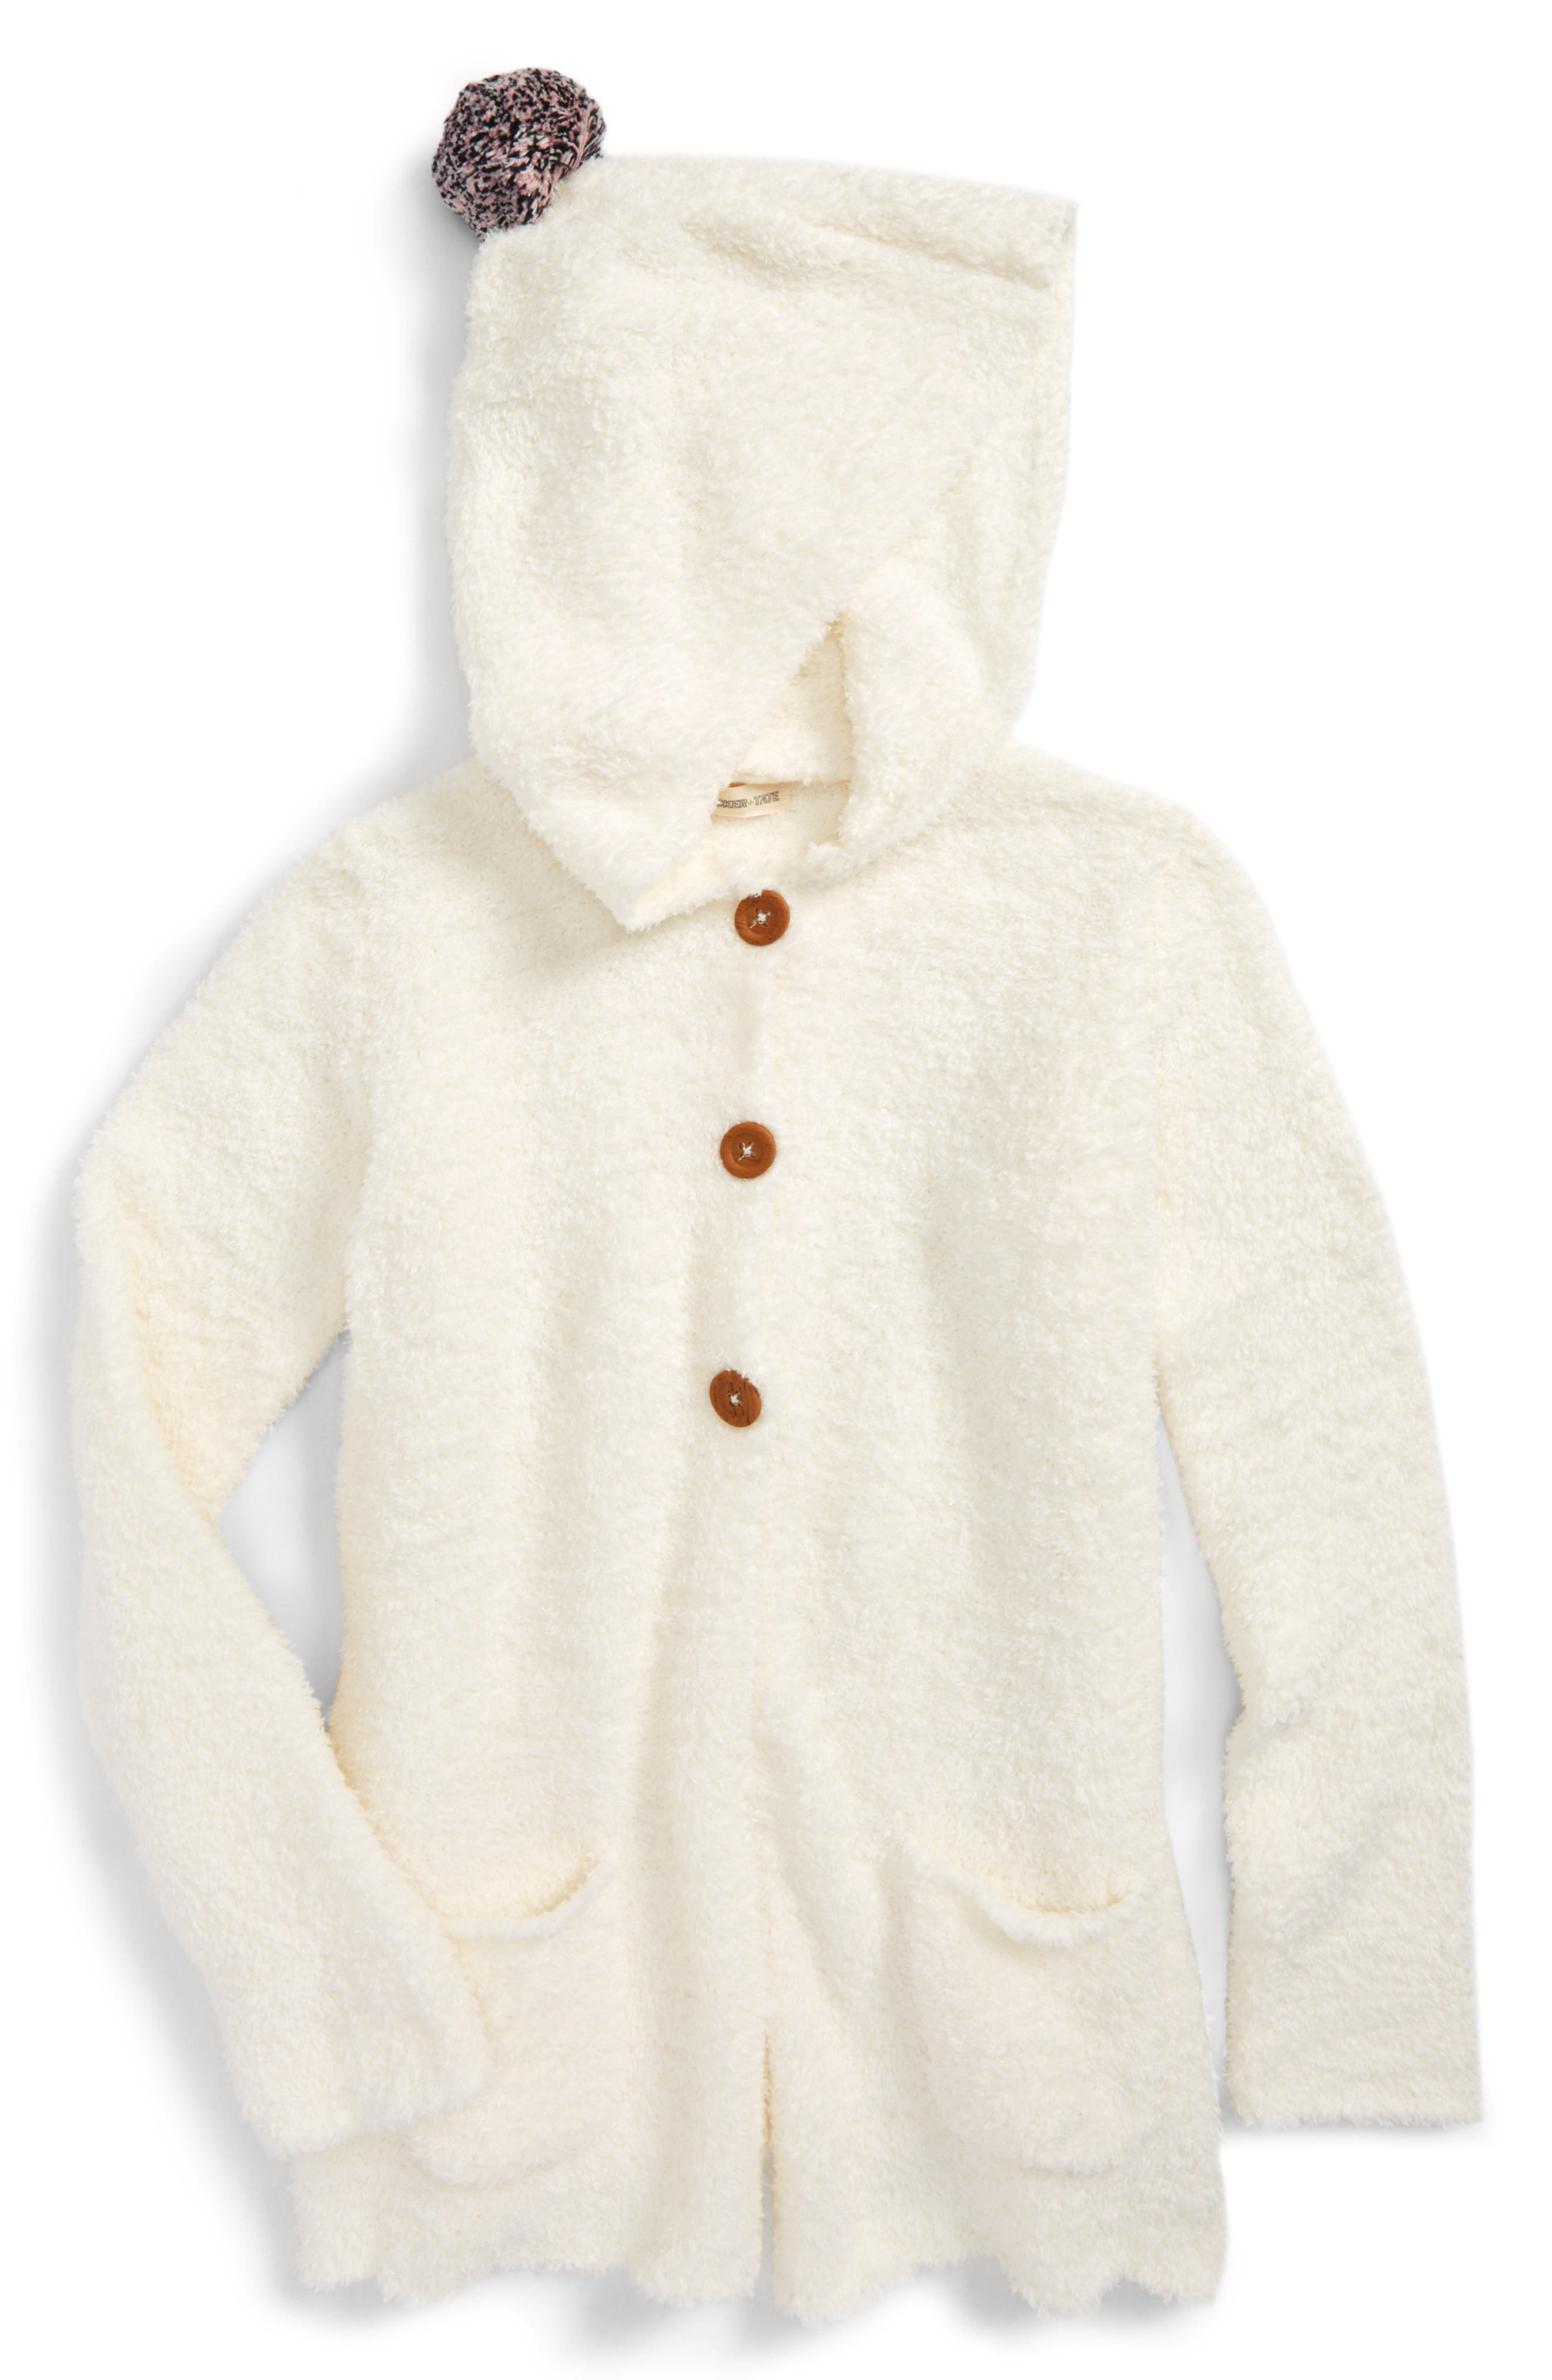 Tucker + Tate Cozy Hooded Cardigan (Toddler Girls, Little Girls & Big Girls)